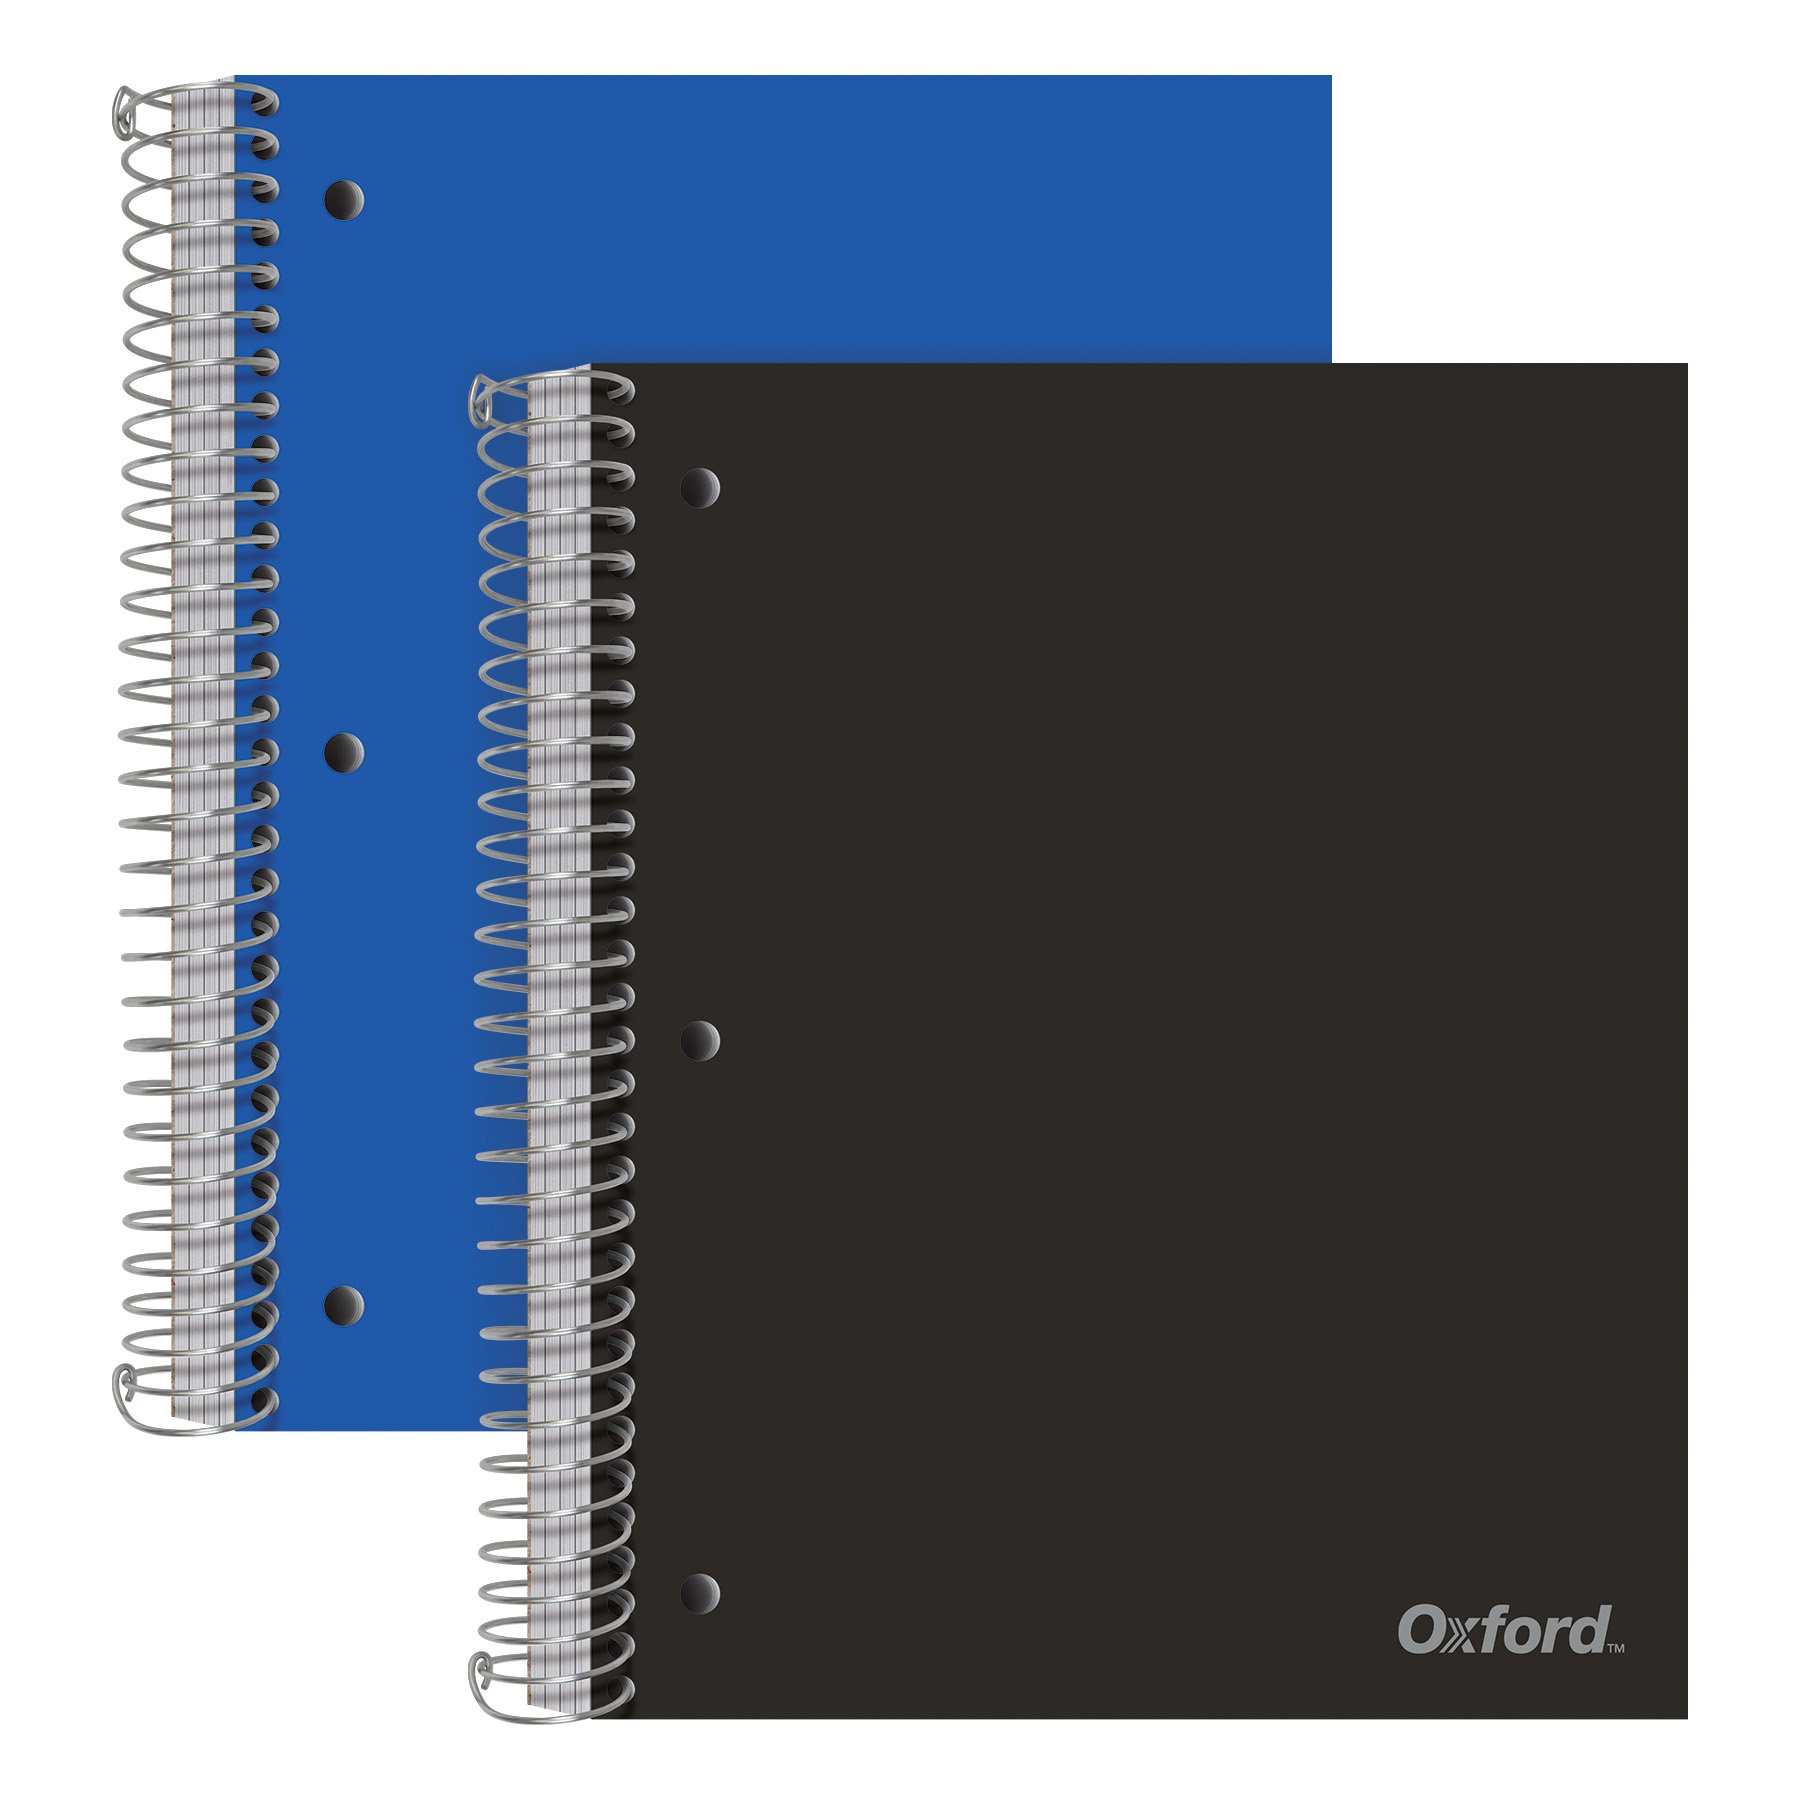 Oxford 5-Subject Poly Notebooks, 8-1/2'' x 10-1/2'', Wide Rule, Assorted Color Covers, 200 Sheets, 5 Poly Divider Pockets, 2 Pack (10387)